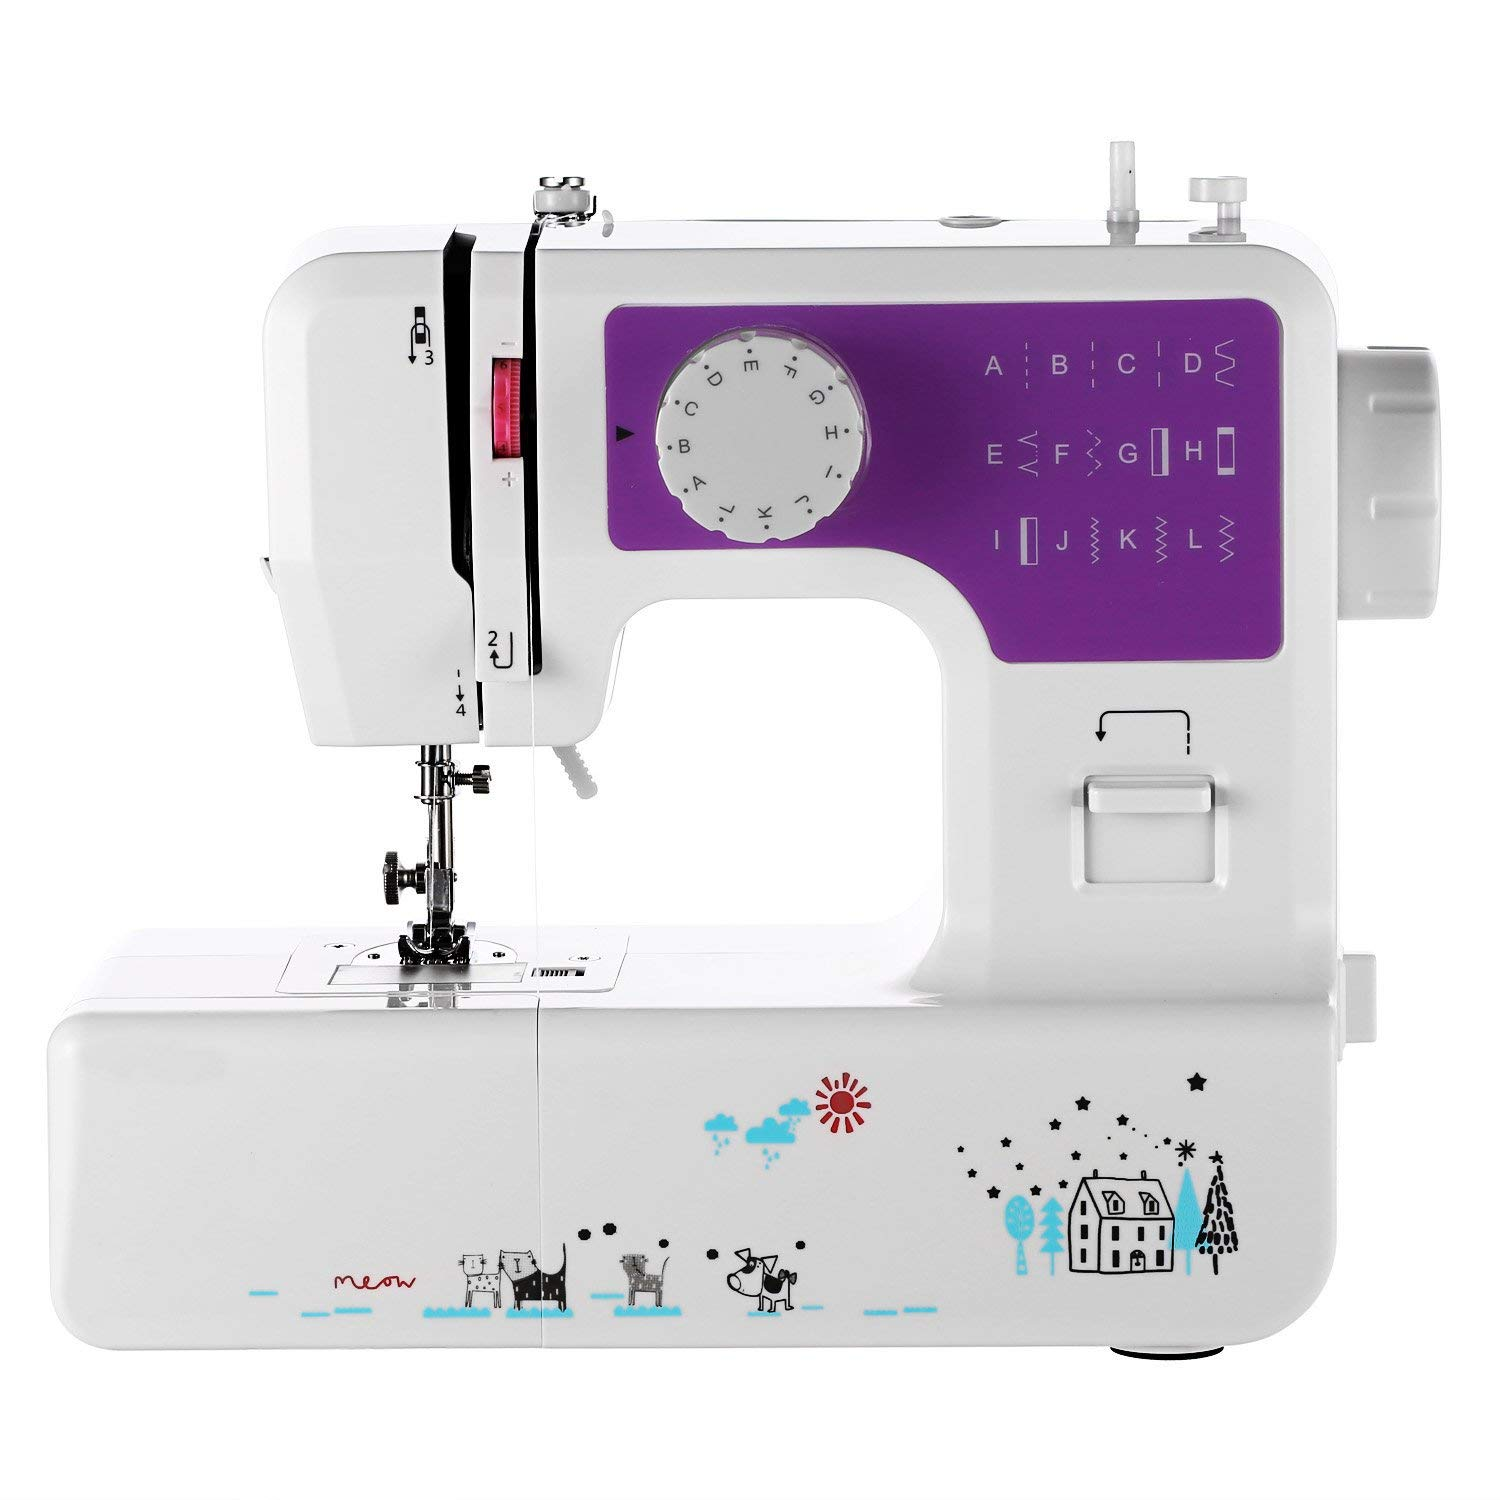 18 stitches including Buttonhole Zigzag And Other Popular Stitching Sunbeam SB1818 Easy-to-Use Everyday Compact Sewing Machine Over 100 Piece Of All Basic Sewing Kit Included